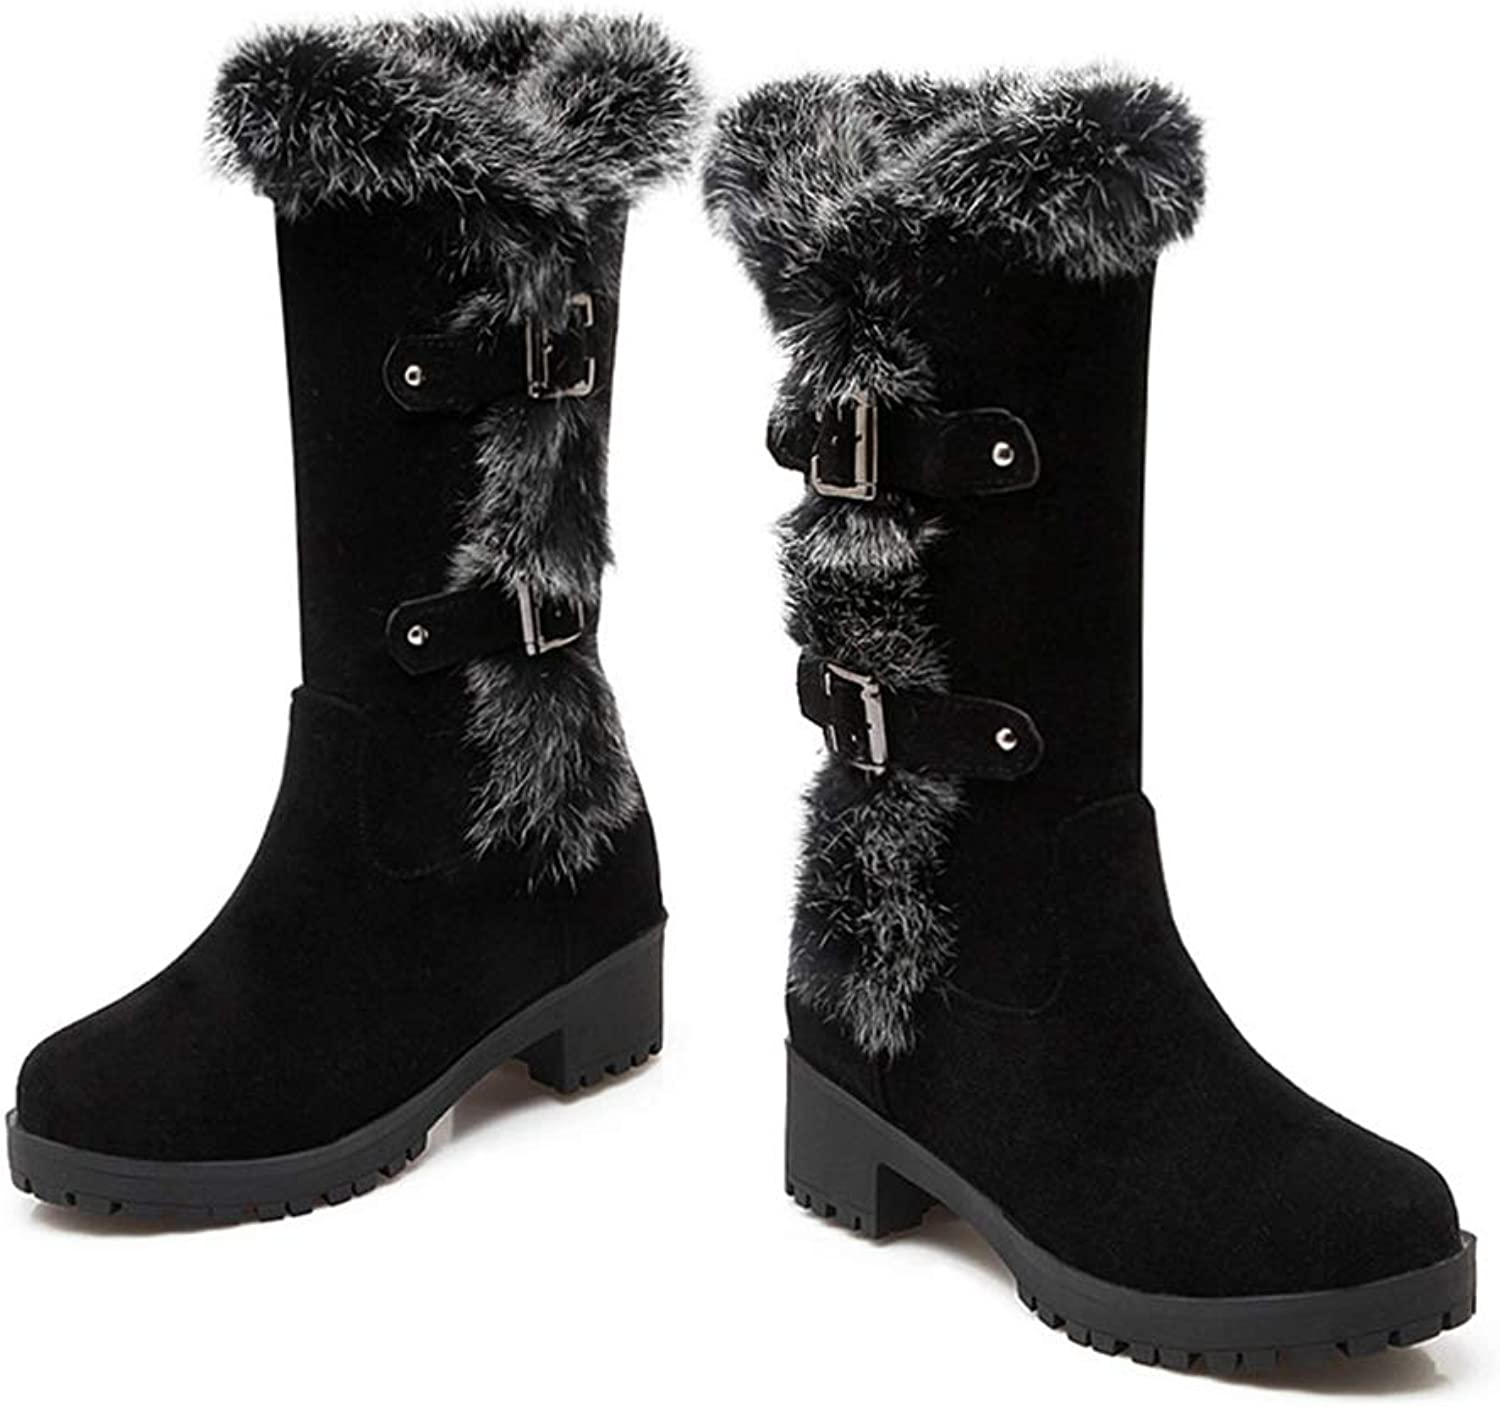 Women's Mid-Calf Boots Winter Square Heel Round Toe Female shoes Plush Warm Fashion Buckle Boot